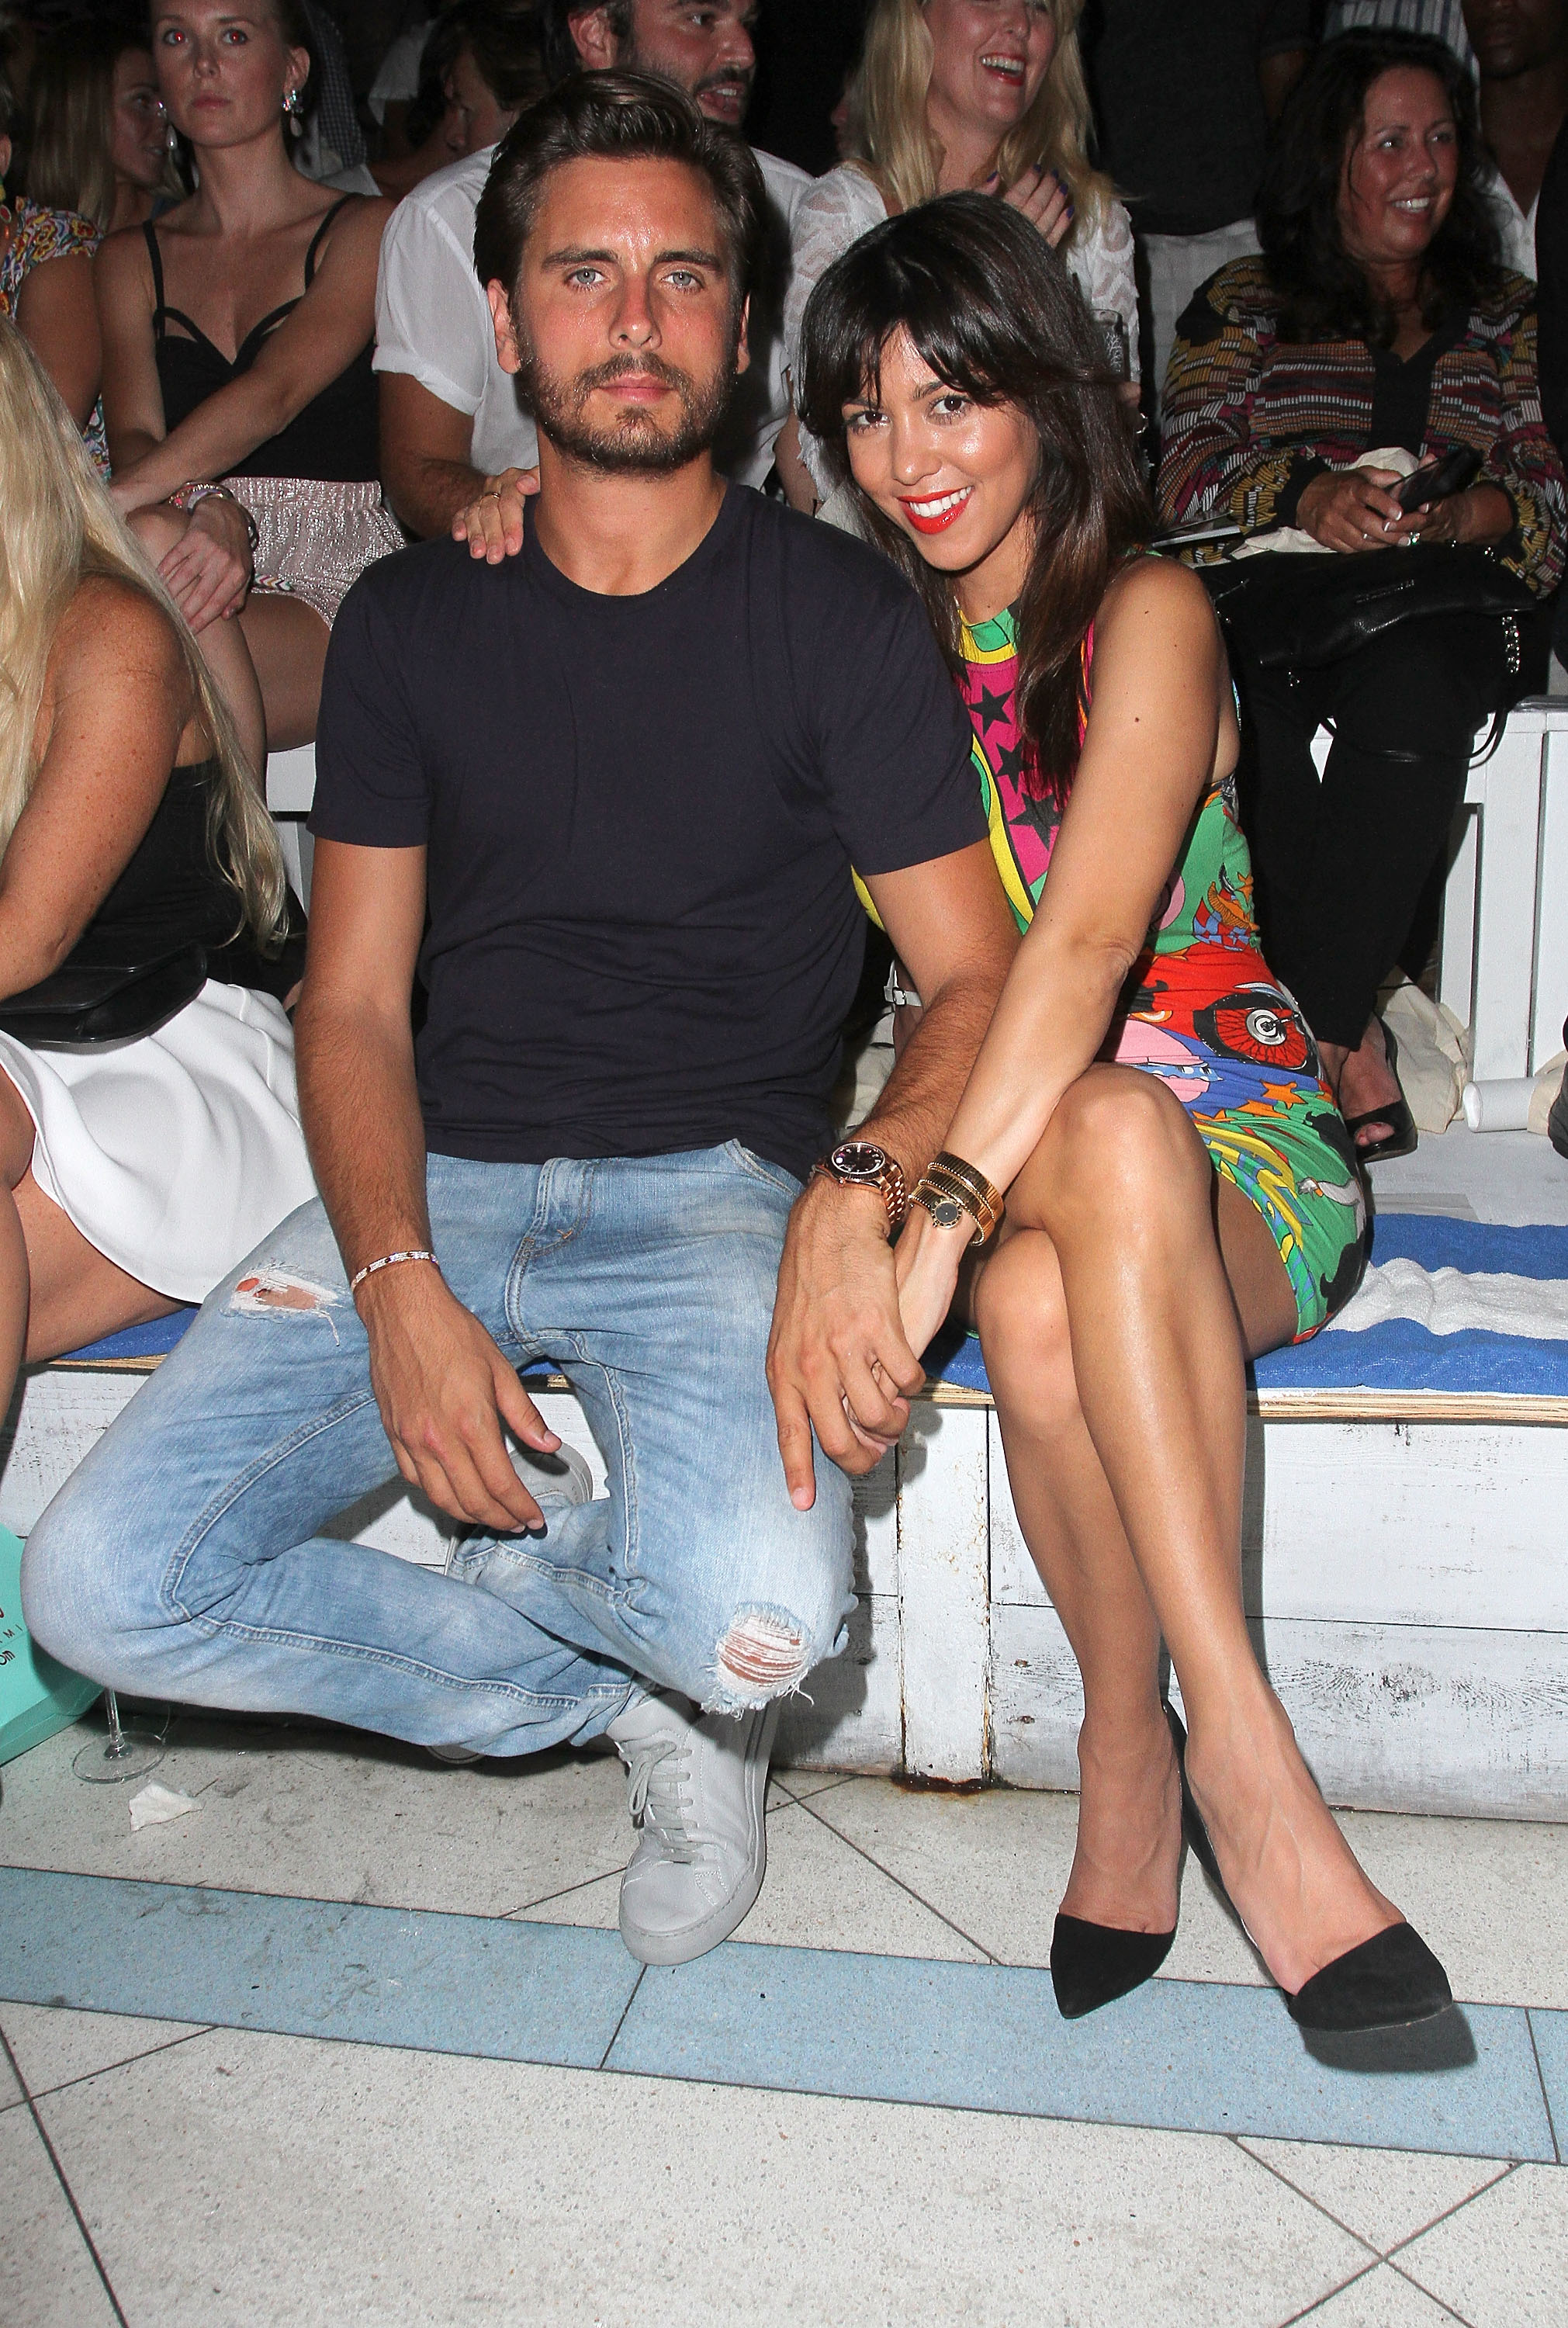 TV personalities Scott Disick and Kourtney Kardashian attend the Wildfox Swim Cruise 2014 show at Soho Beach House on July 21, 2013, in Miami Beach, Florida. (Getty Images)